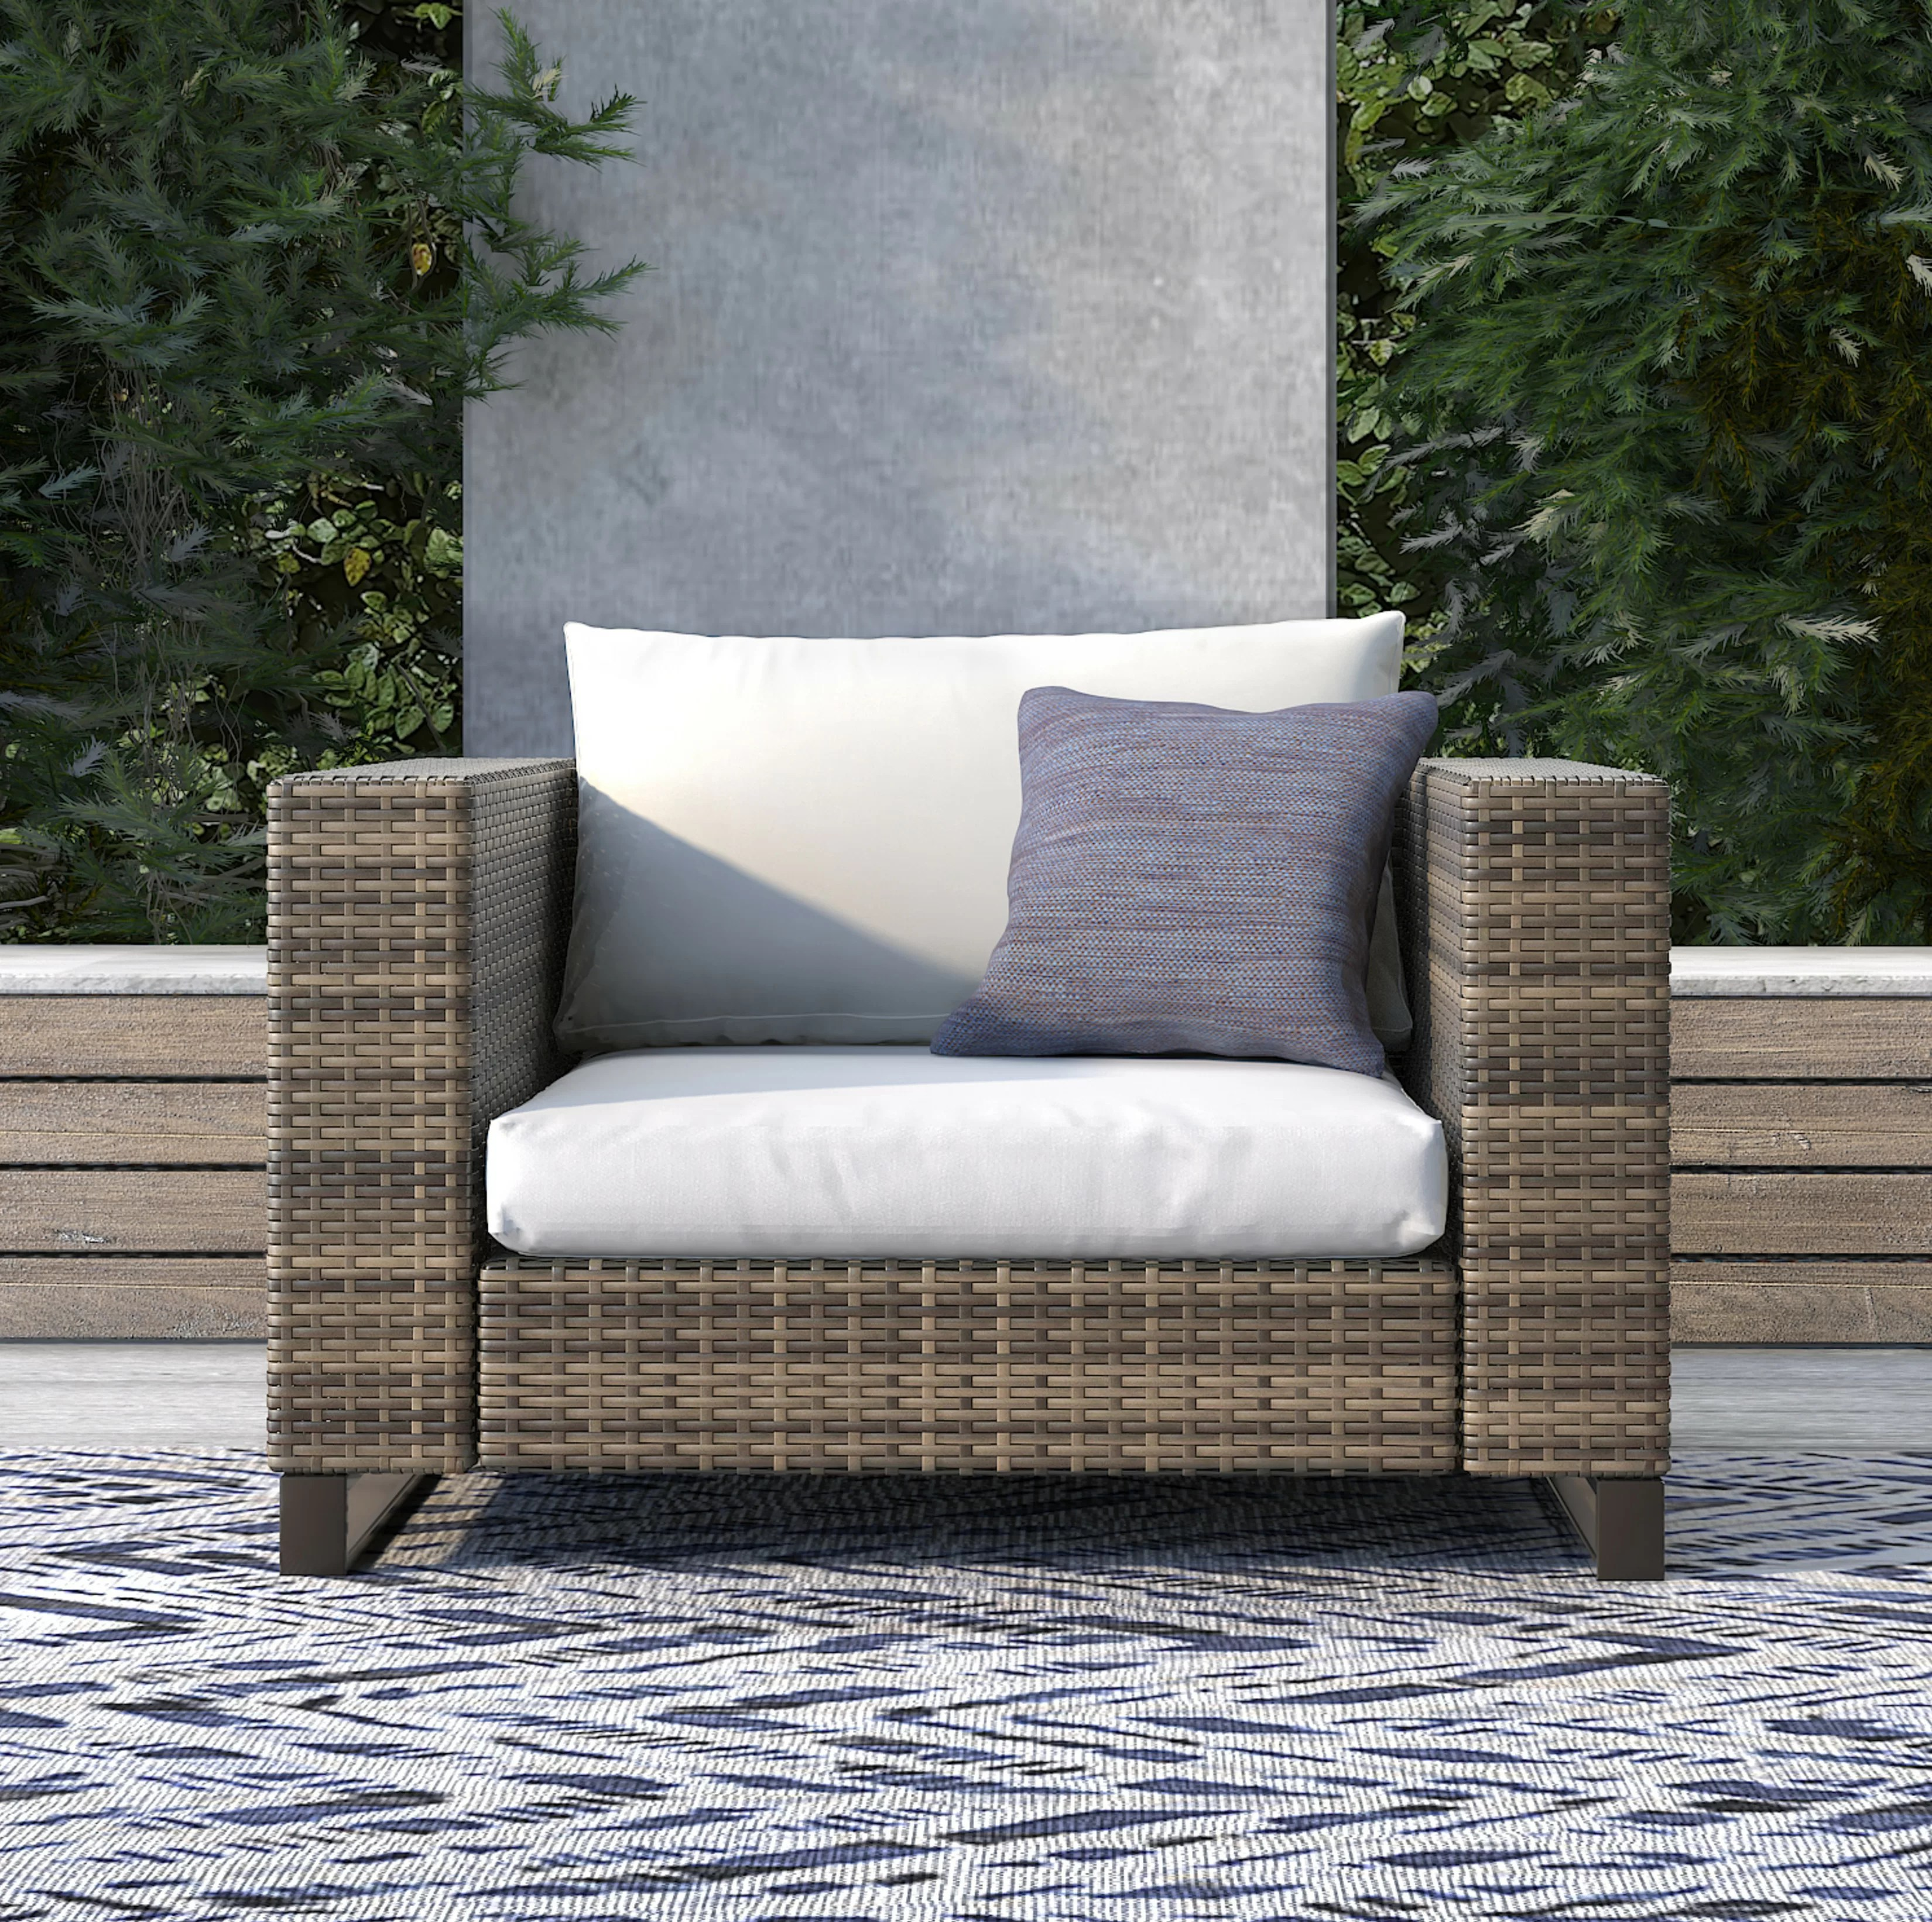 Wicker Patio Chair Oceanside Outdoor Wicker Patio Chair With Cushions